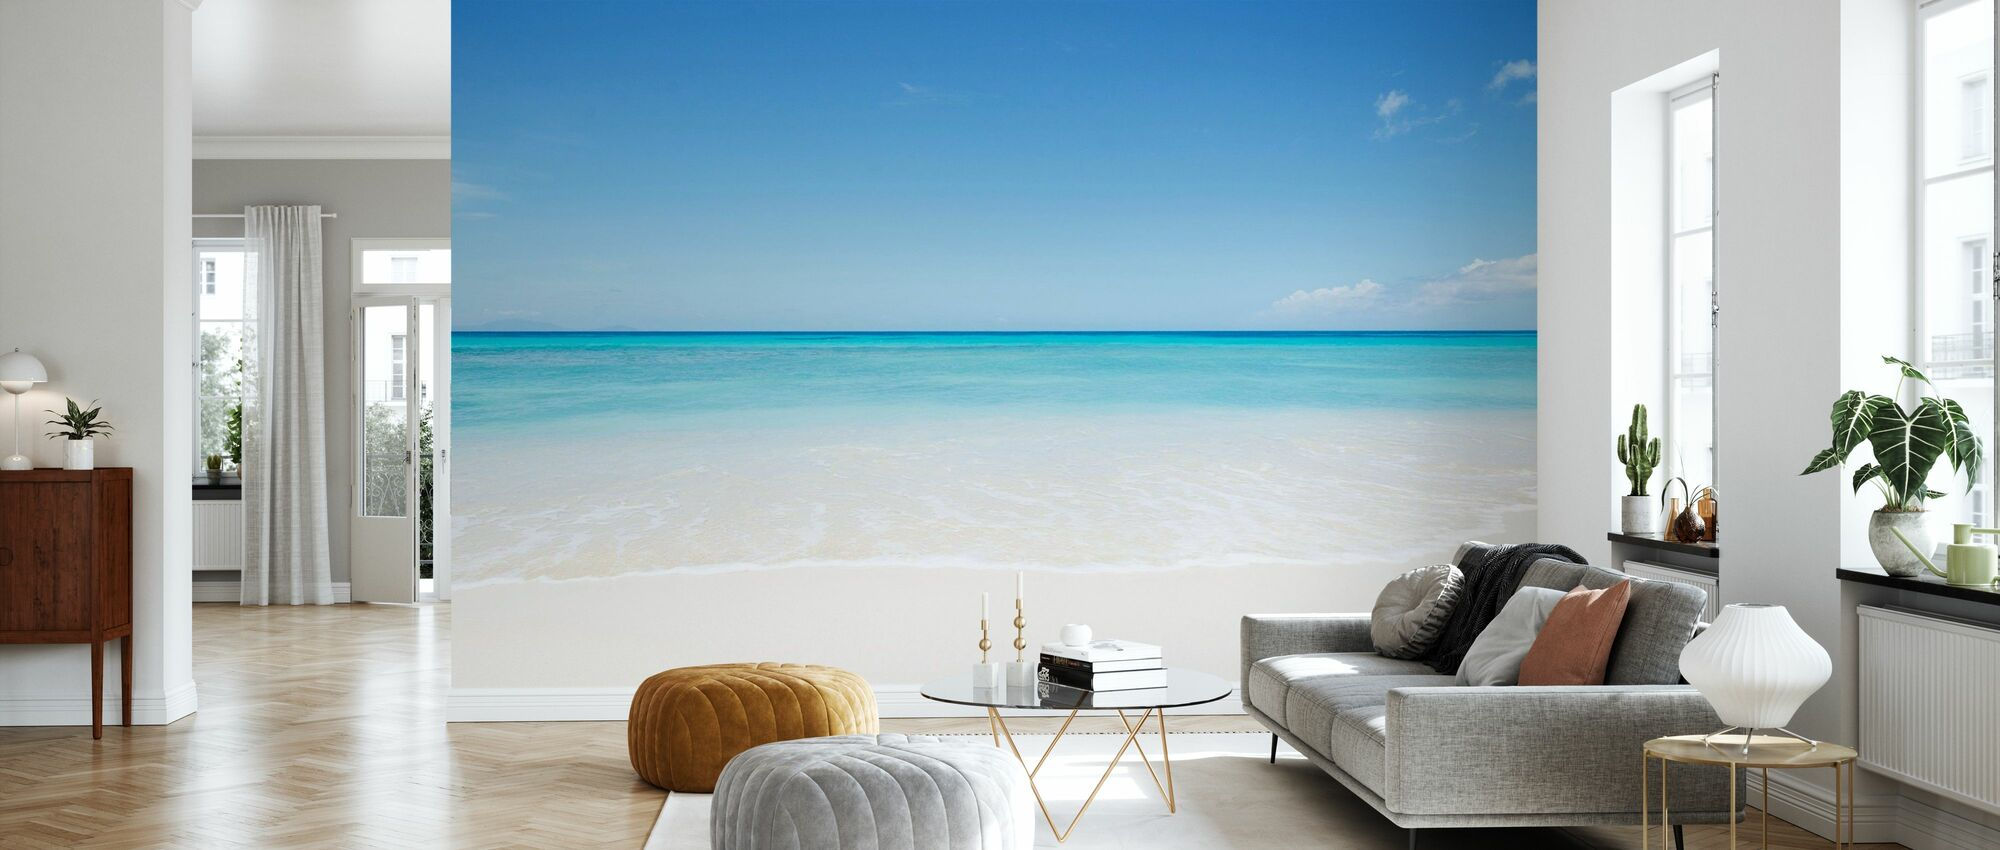 Perfect Horizon - Wallpaper - Living Room